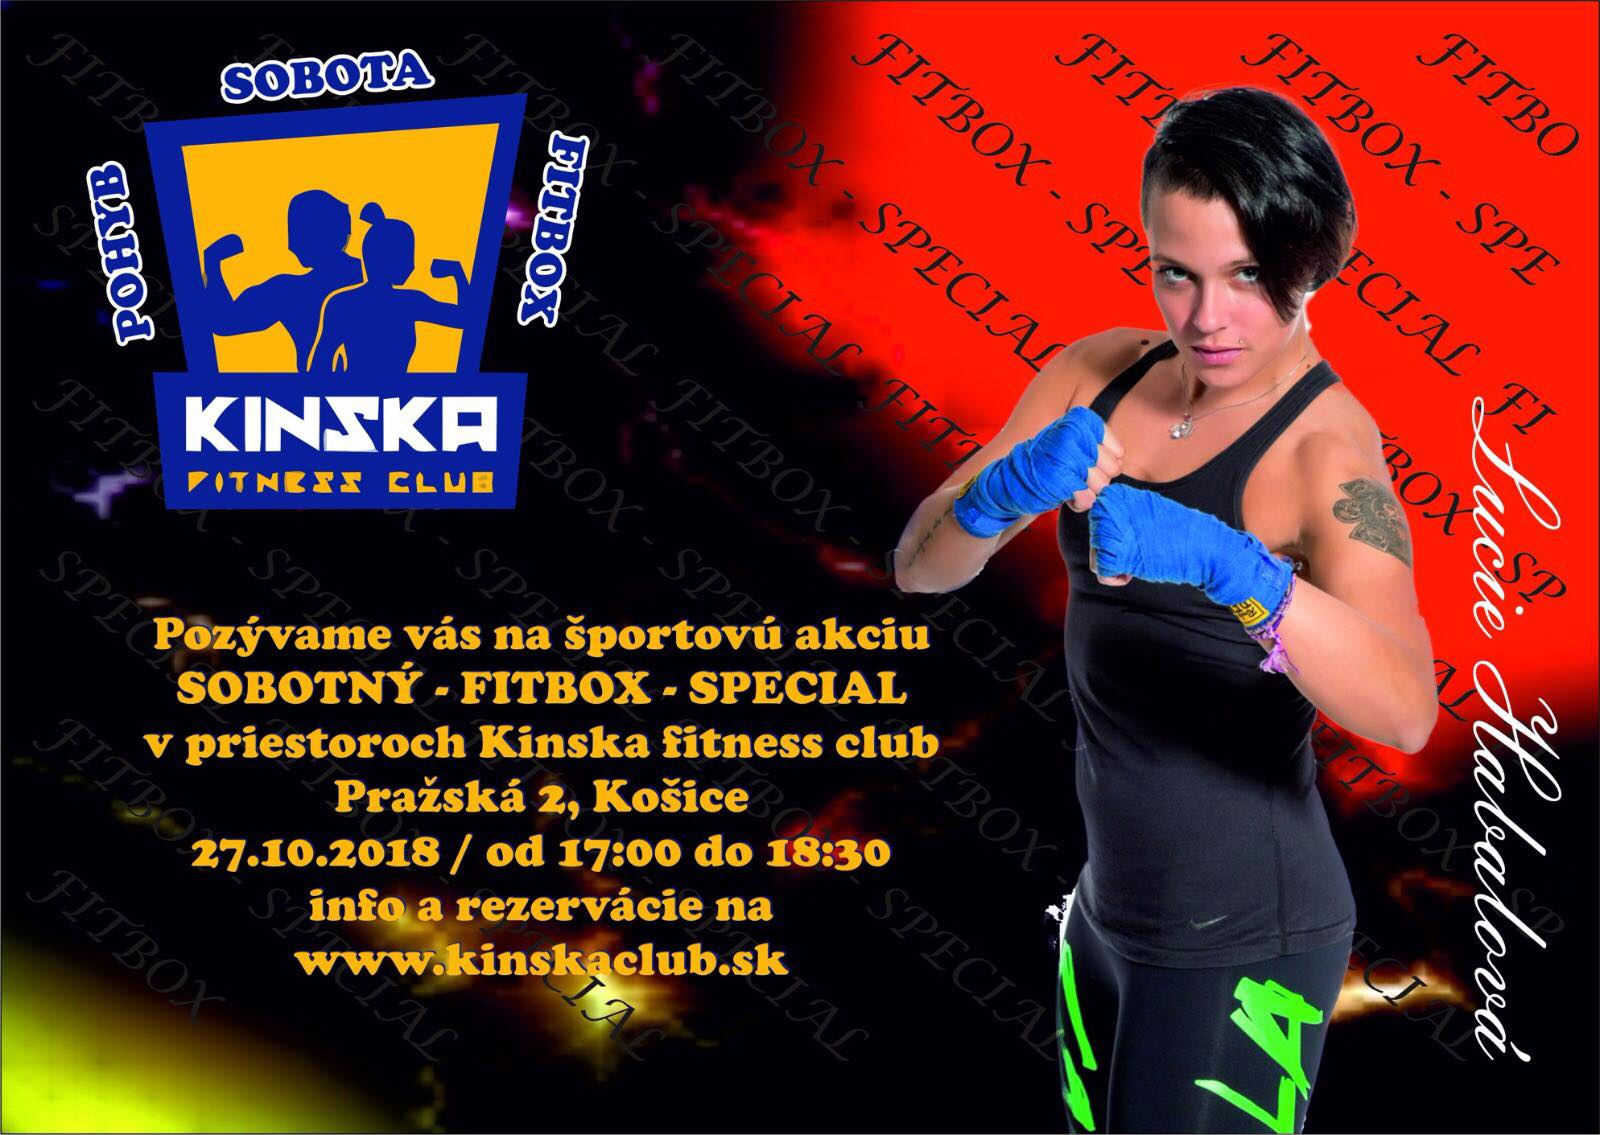 kinska fitness club